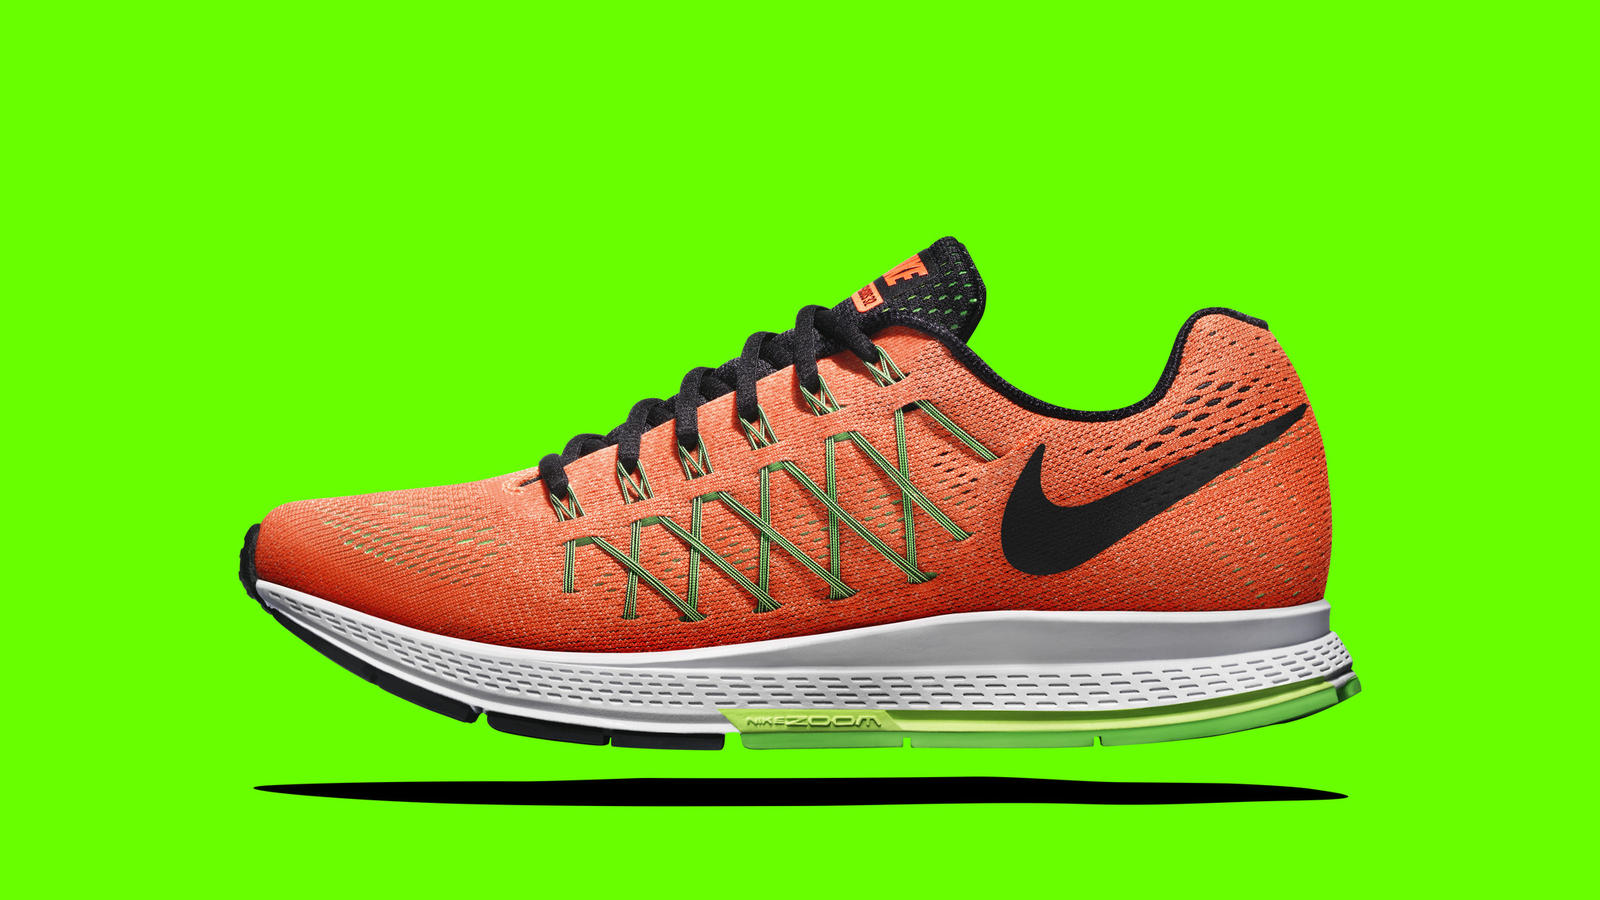 NIKE ZOOM AIR PEGASUS 32